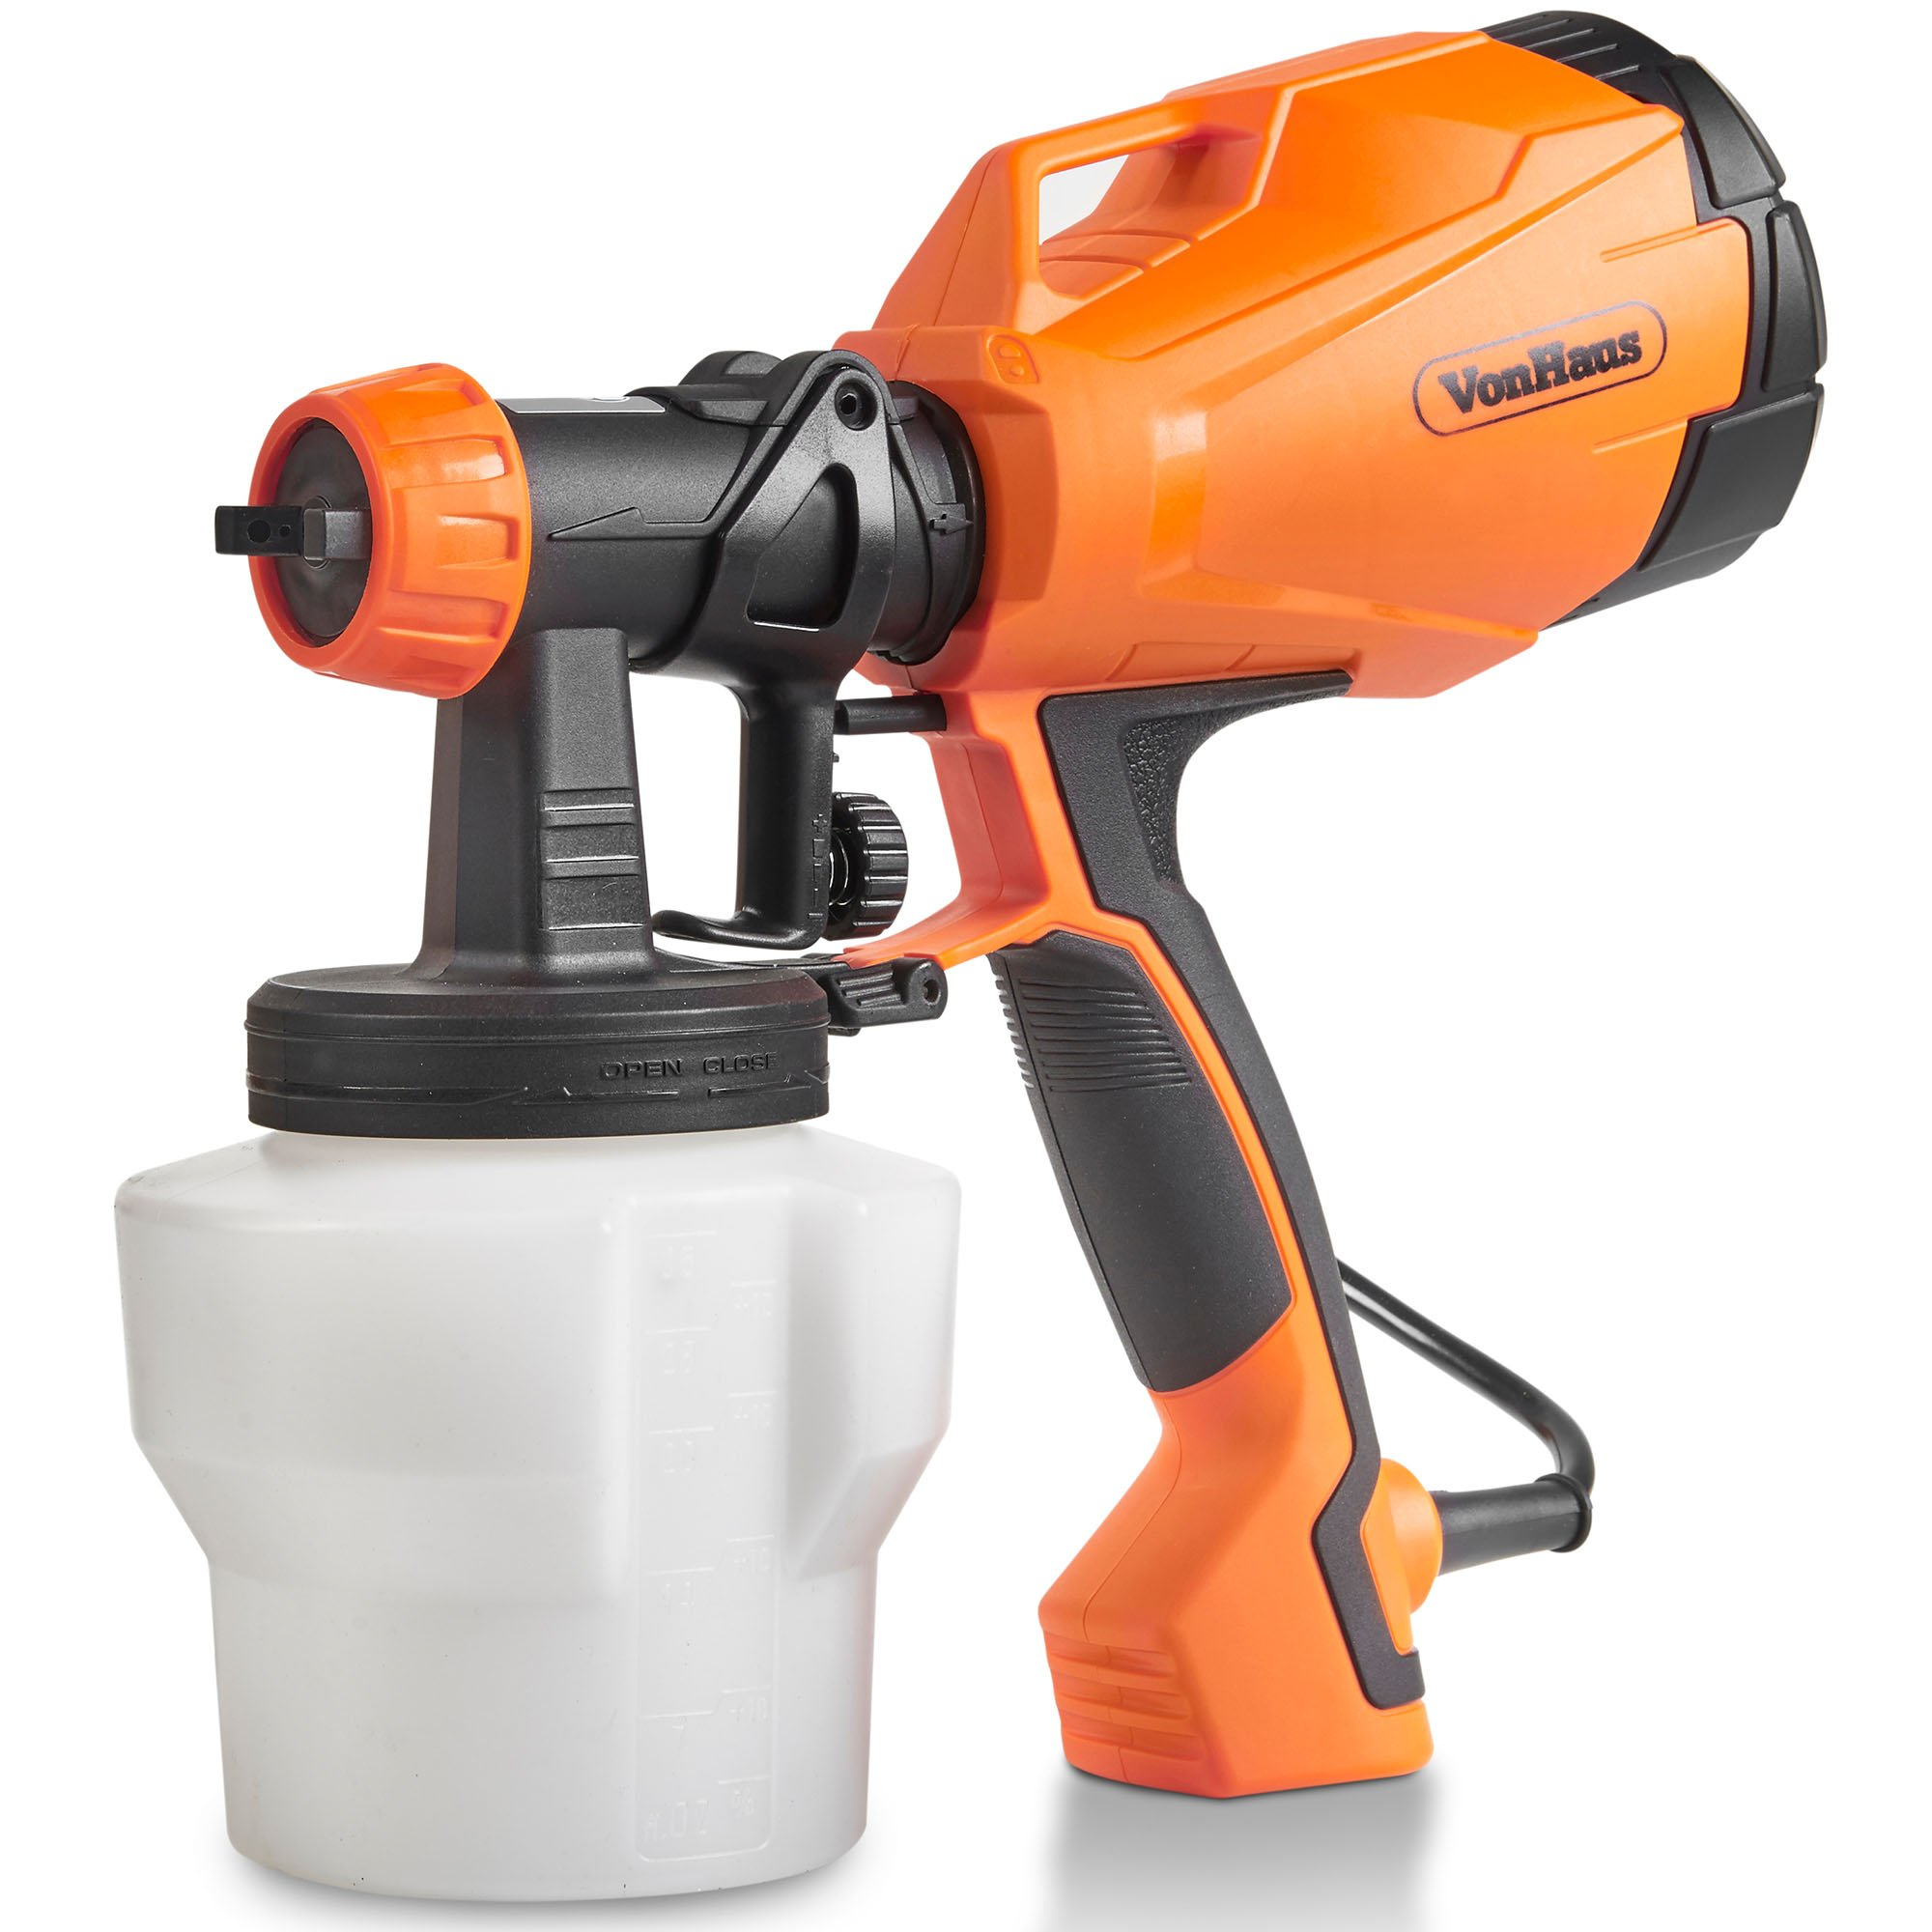 VonHaus Electric HVLP Spray Gun Paint Sprayer with 3 Adjustable Spray Patterns and Flow Control Ideal for Painting Fences, Ceilings, Walls and Floor